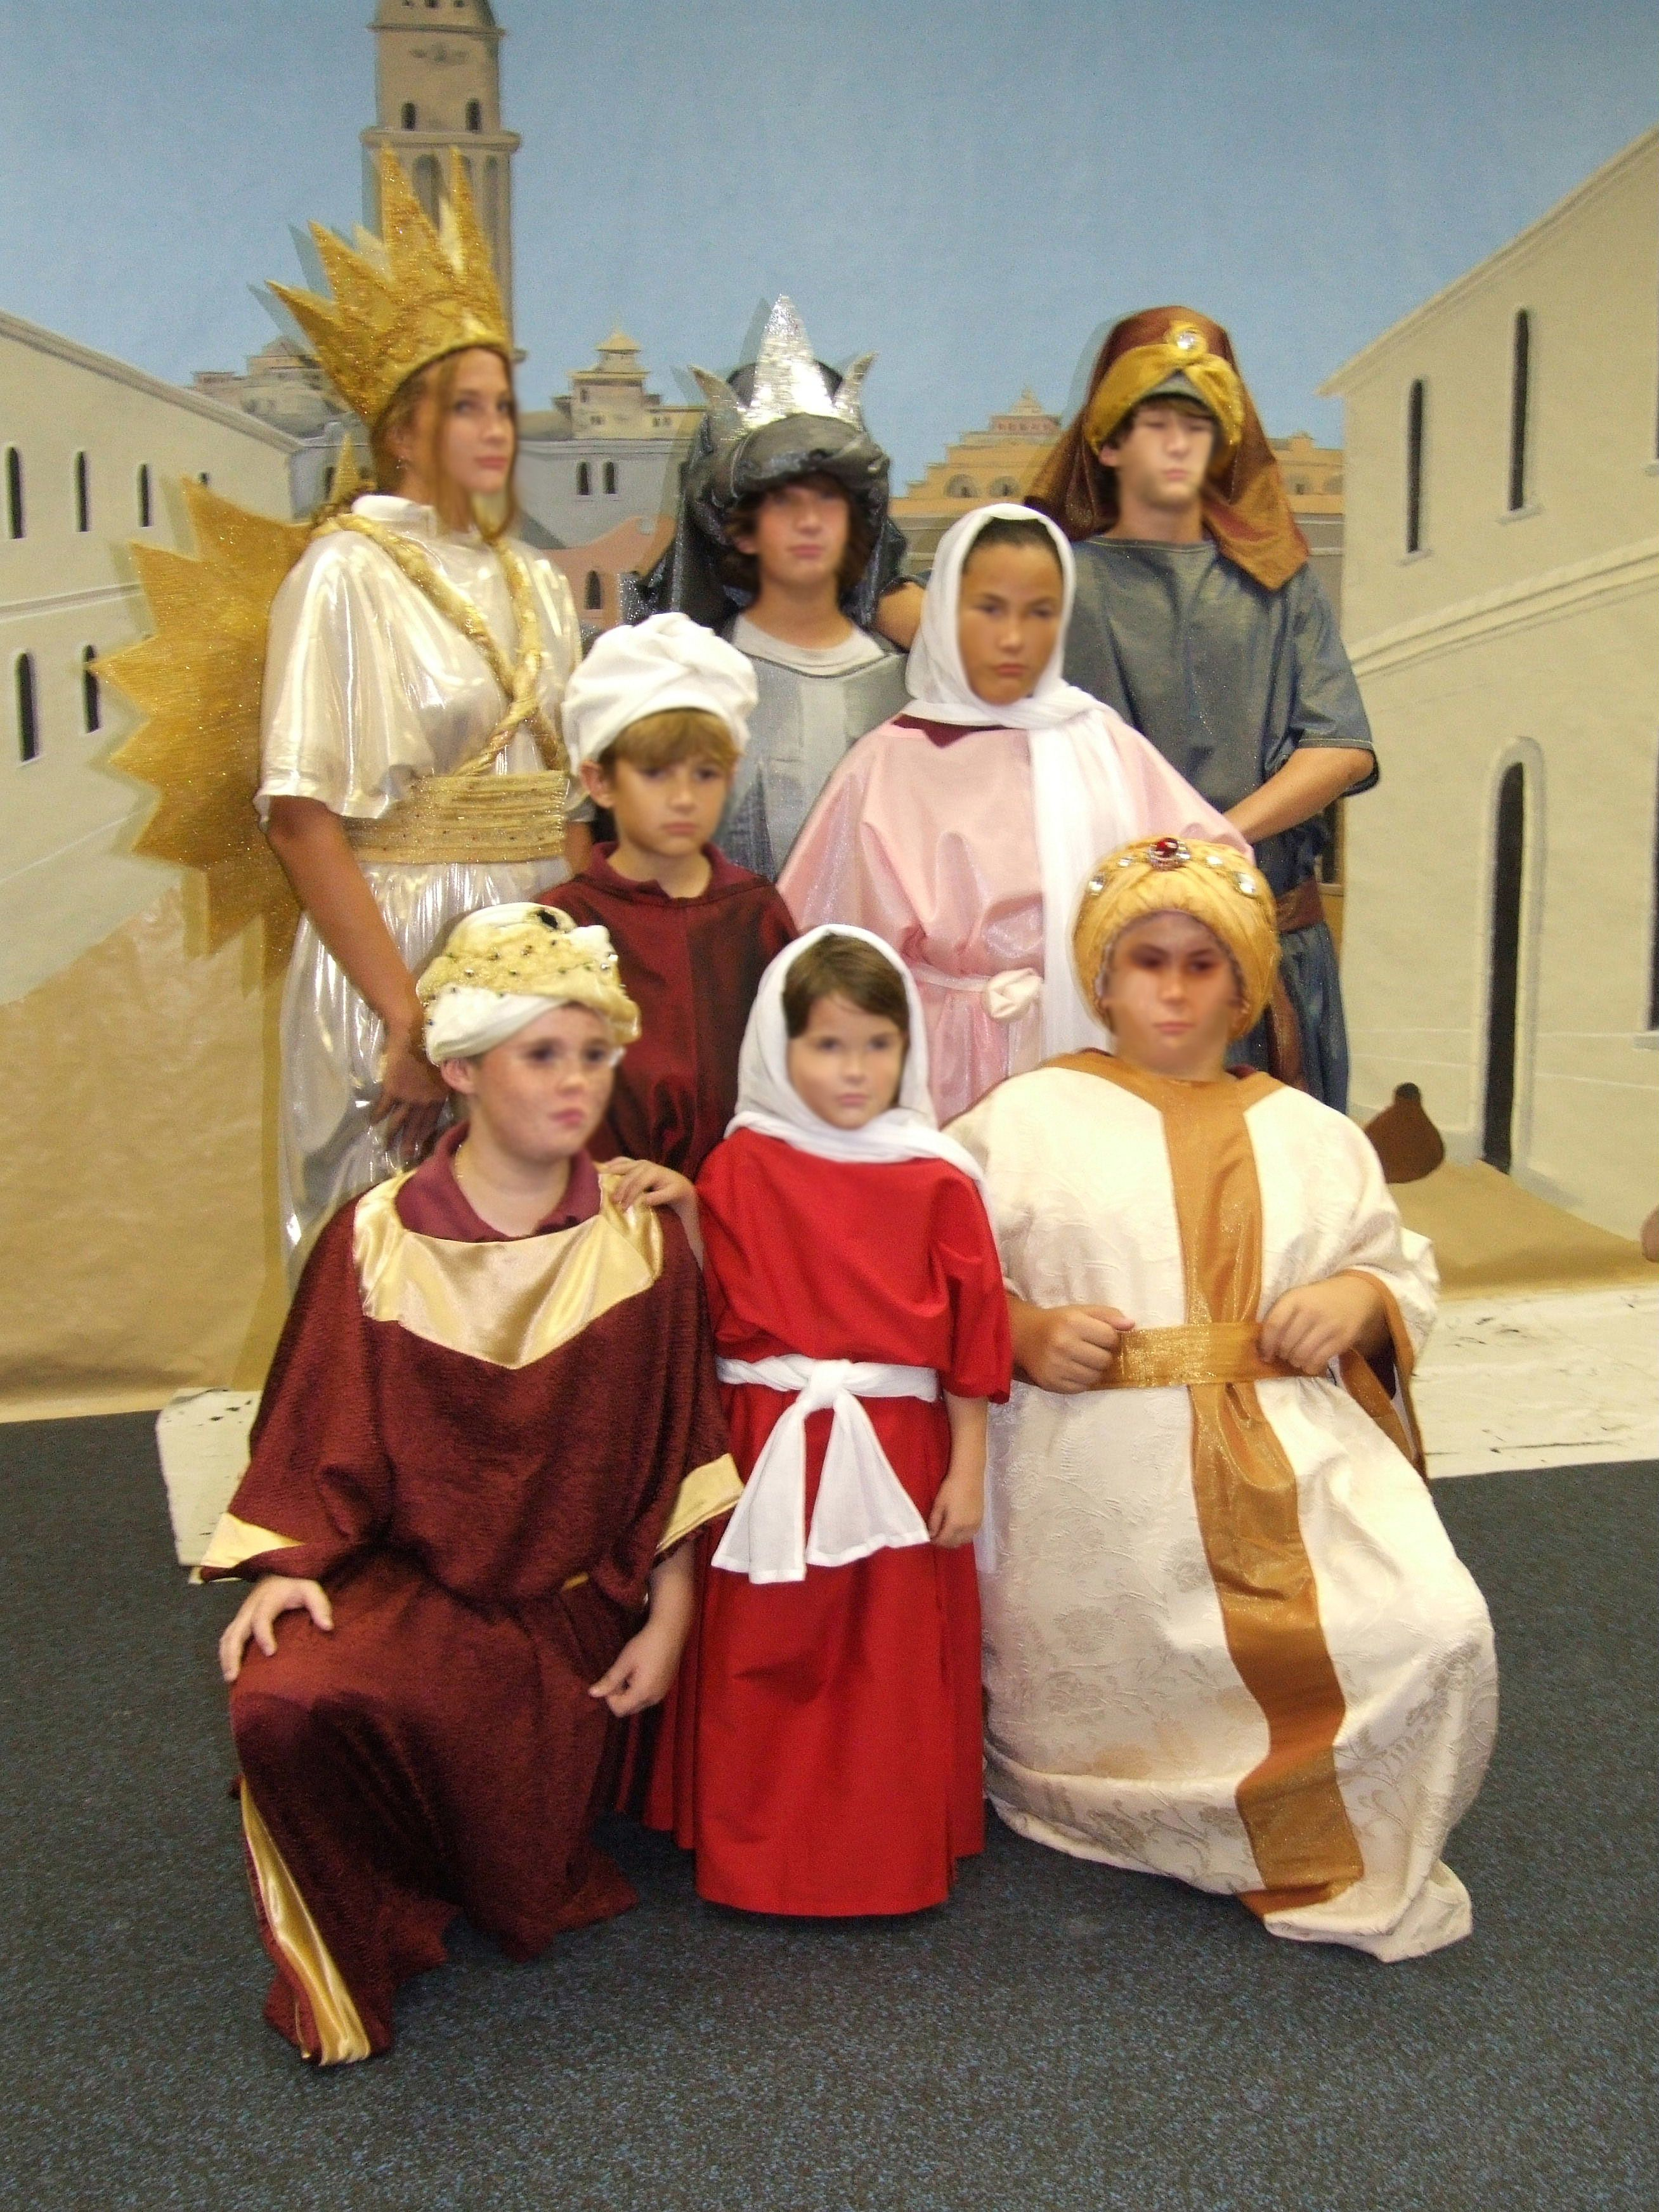 Biblical costumes for christmas play arts crafts pinterest biblical costumes for christmas play solutioingenieria Gallery